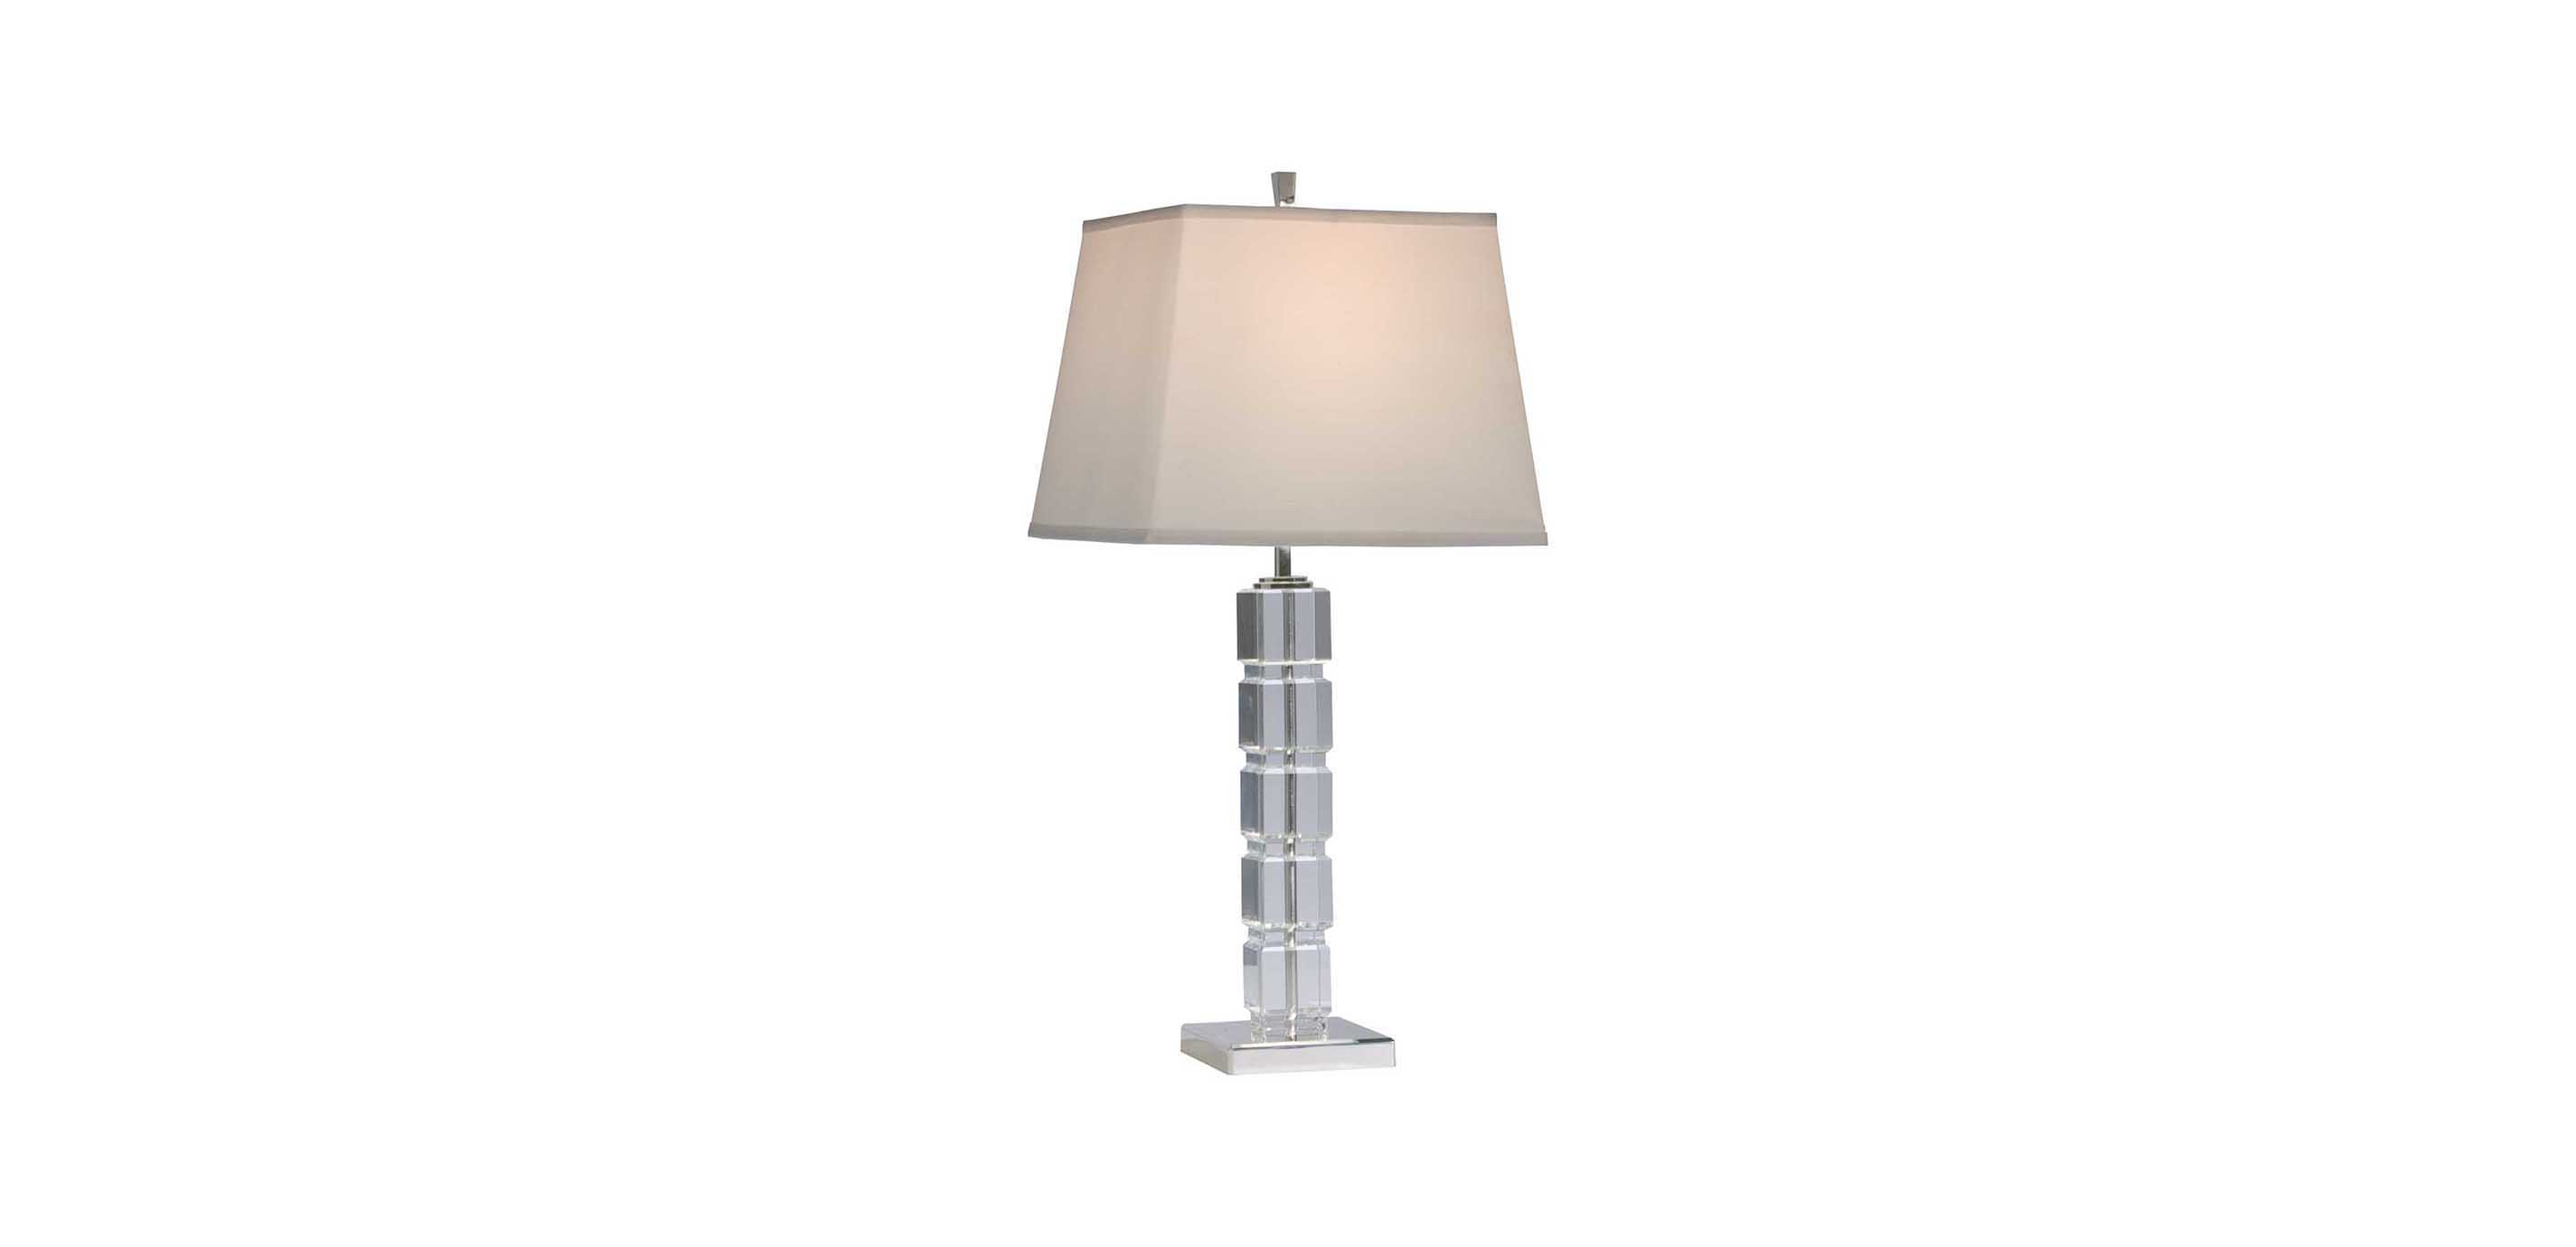 Crystal Blocks Table Lamp  TABLE LAMPS  Ethan Allen